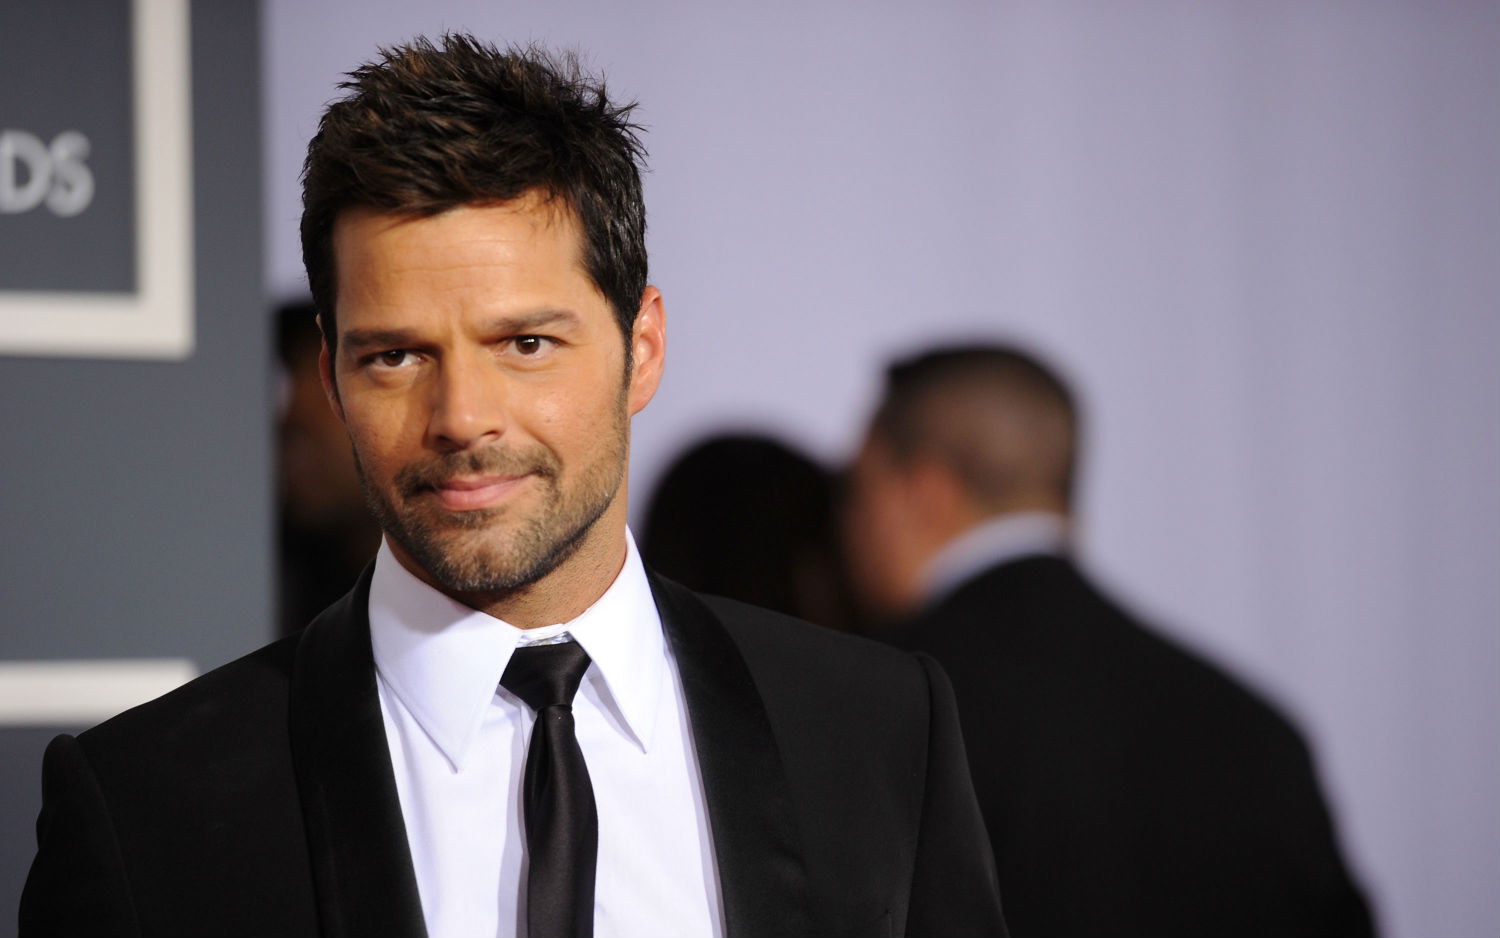 Ricky Martin1 GettyImages-109066397